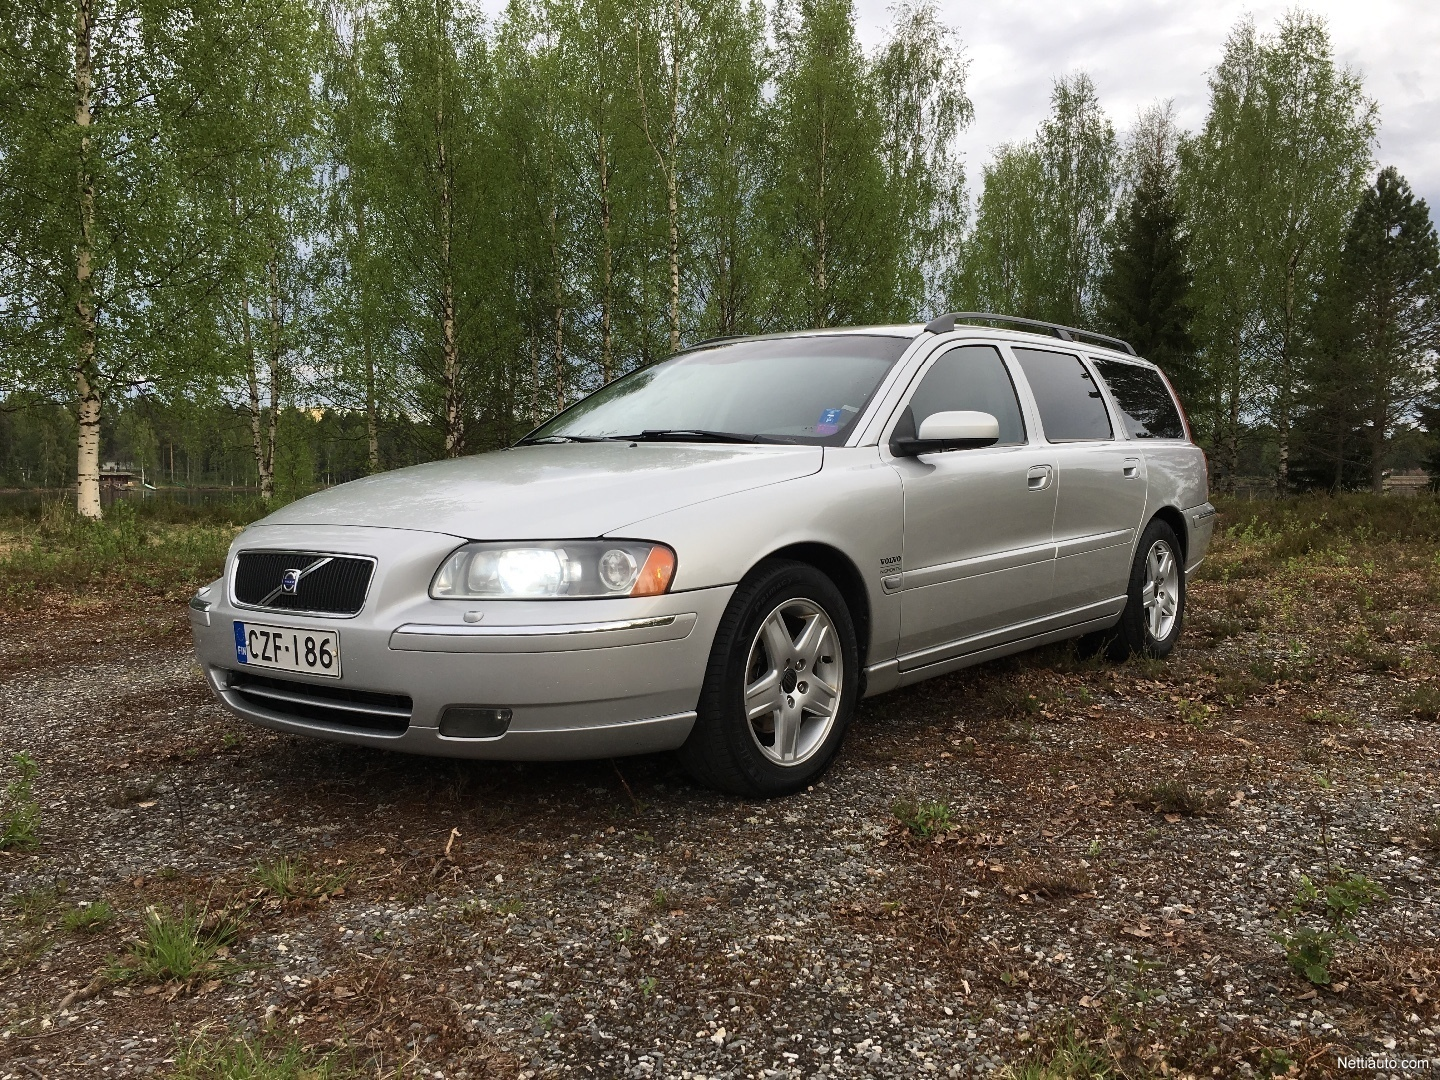 volvo v70 d5 summum sportswagon geartr station wagon 2006 used vehicle nettiauto. Black Bedroom Furniture Sets. Home Design Ideas